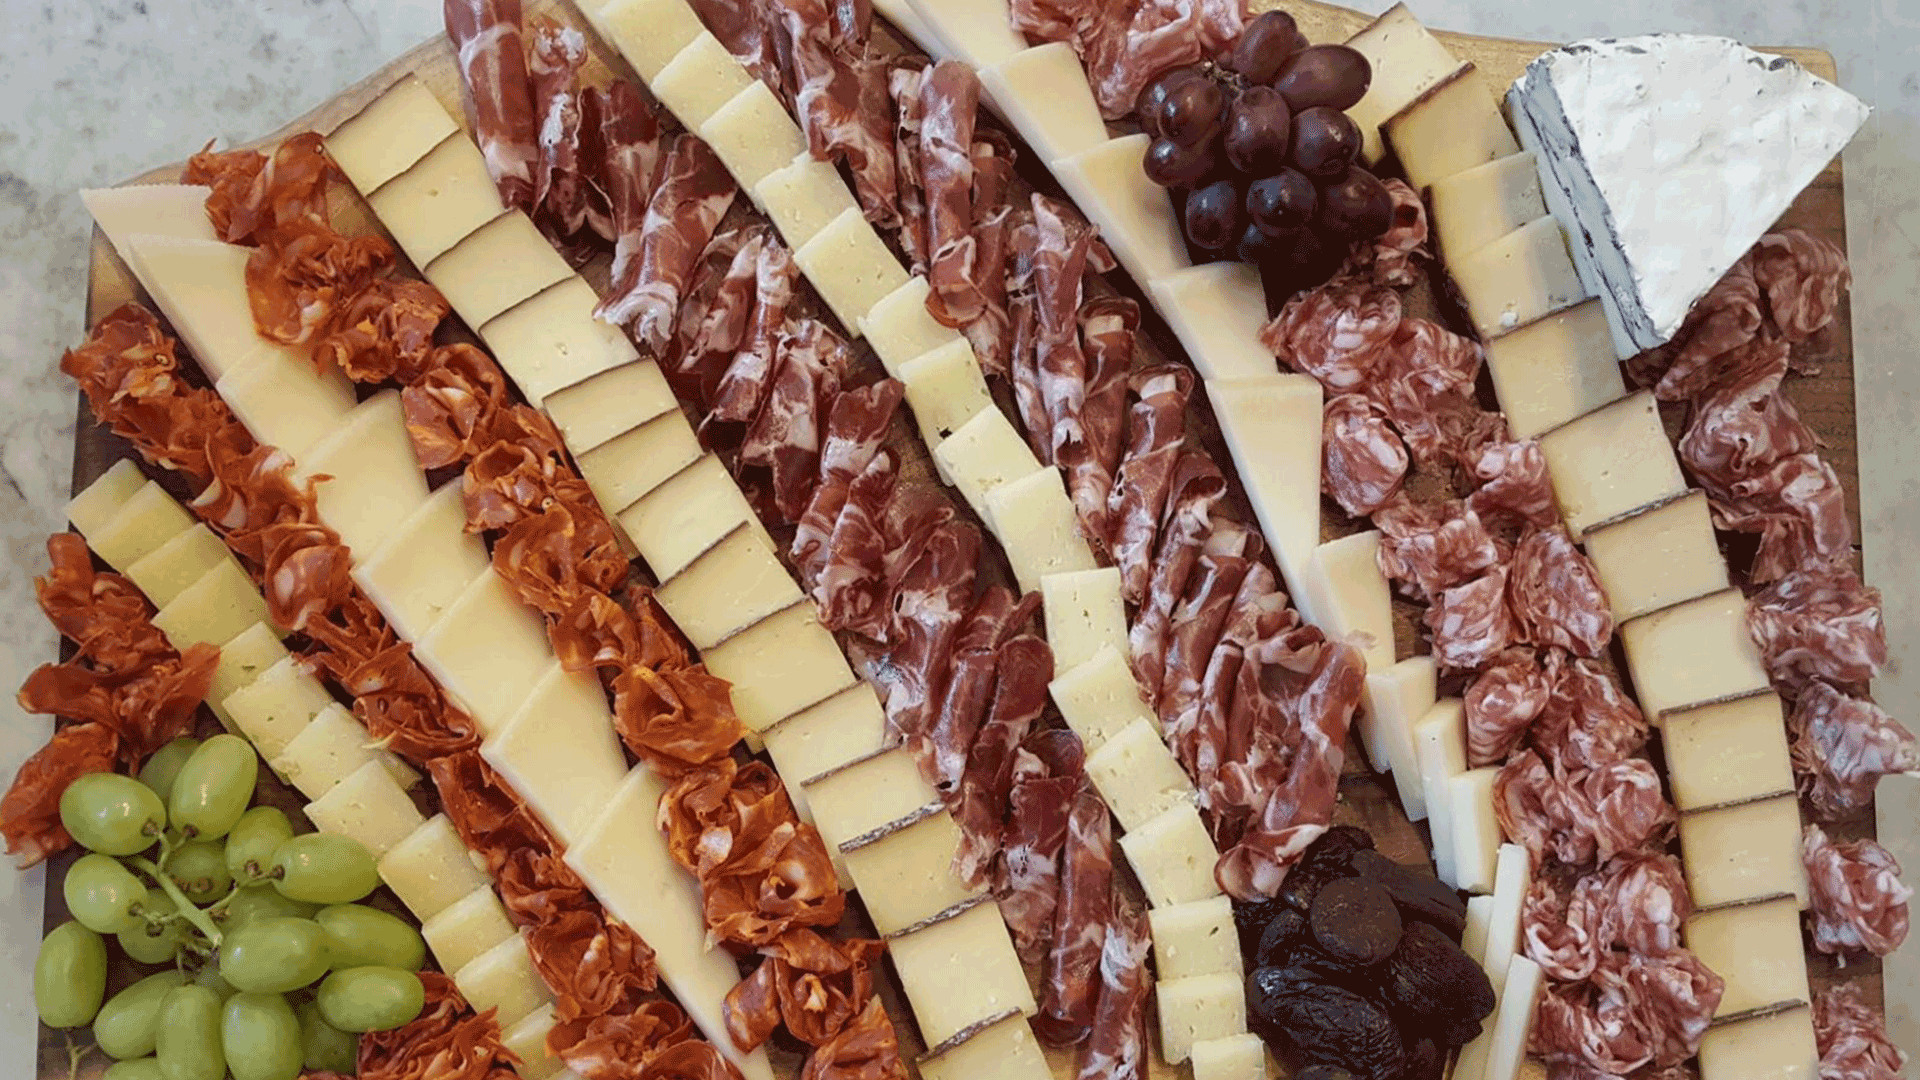 Top Toronto butcher shops for high-quality meat | Charcuterie from Bespoke Butchers